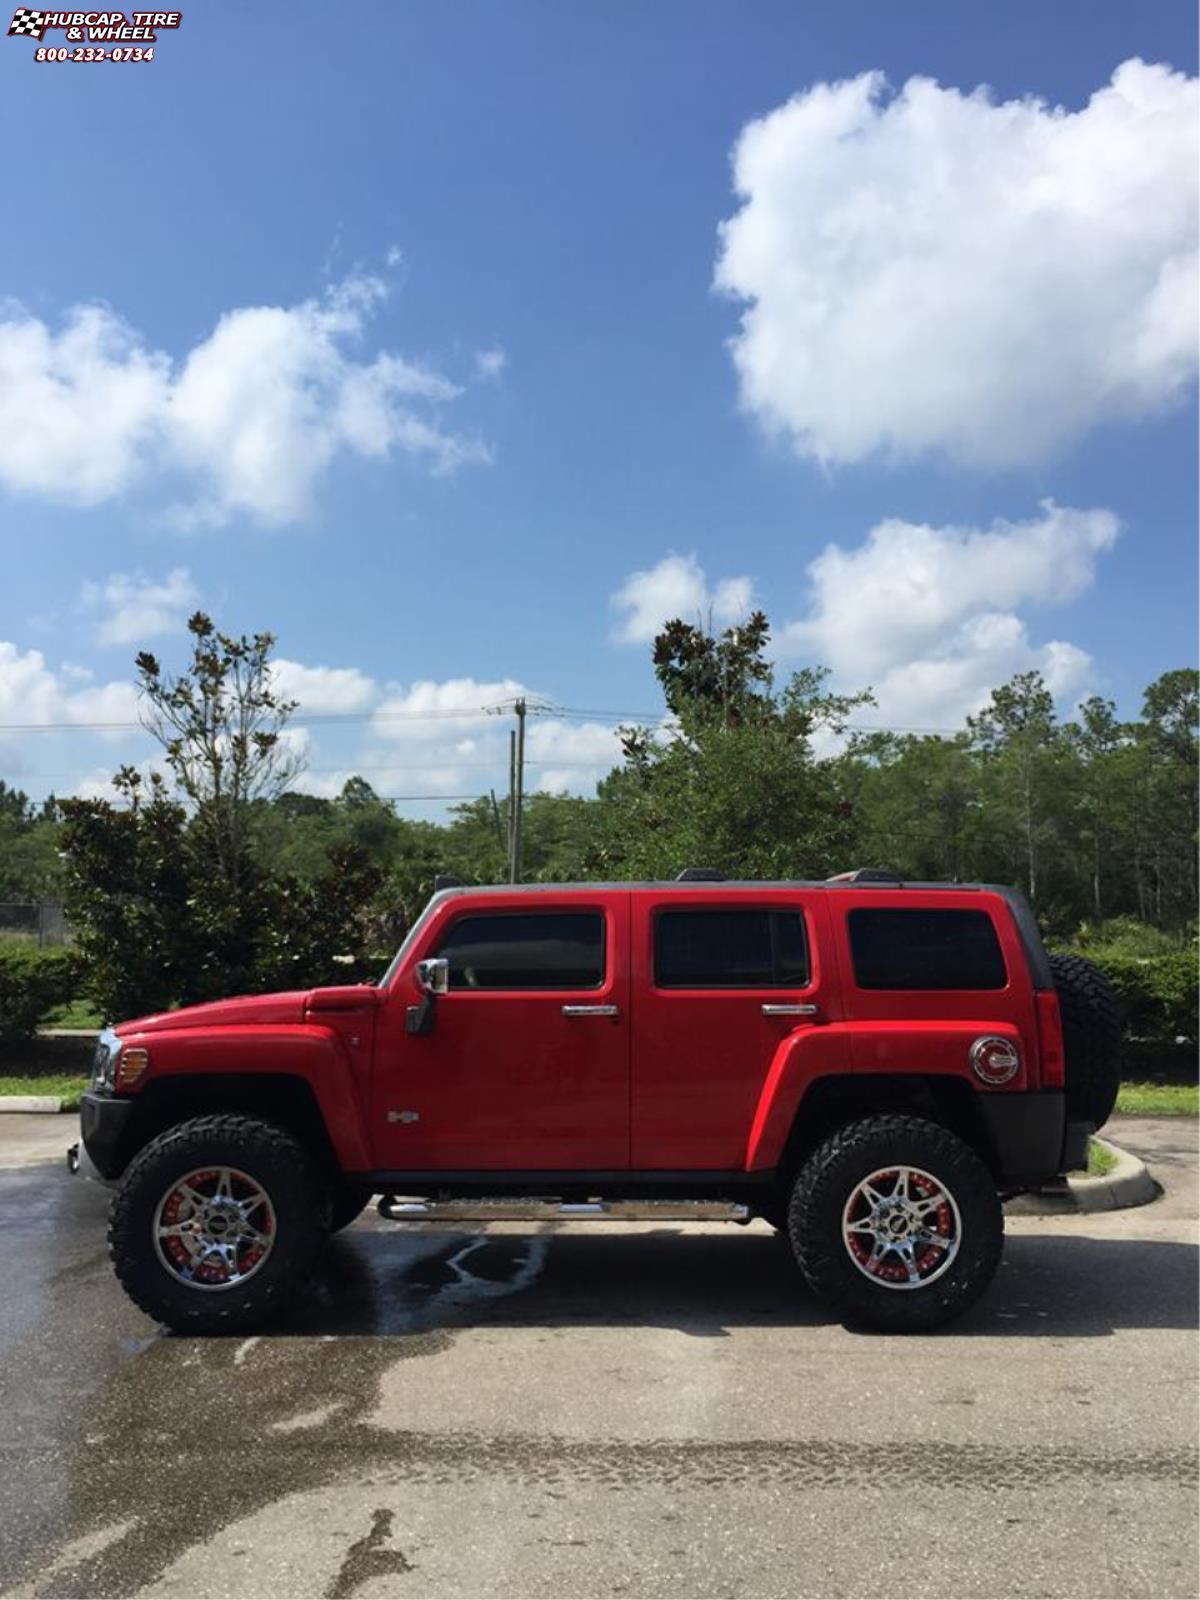 Hummer H3 Moto Metal MO961 Wheels Chrome Red Insert